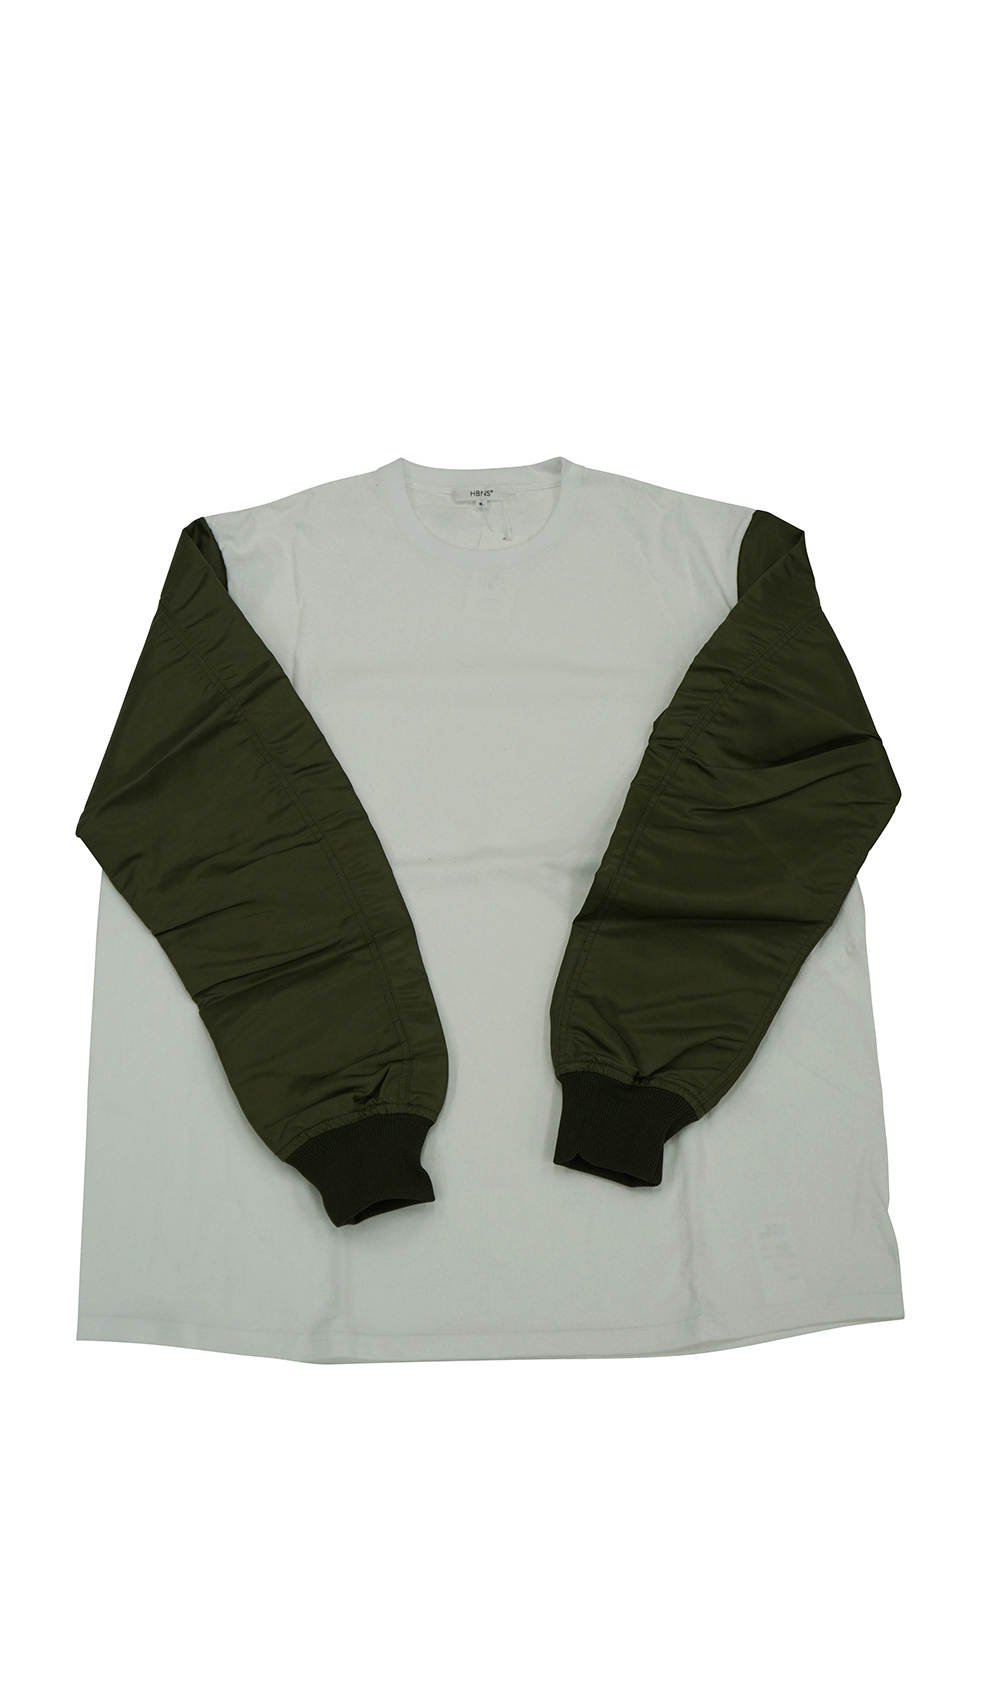 FLIGHT-SLEEVE L/SL Tee (WHITE / KHAKI)